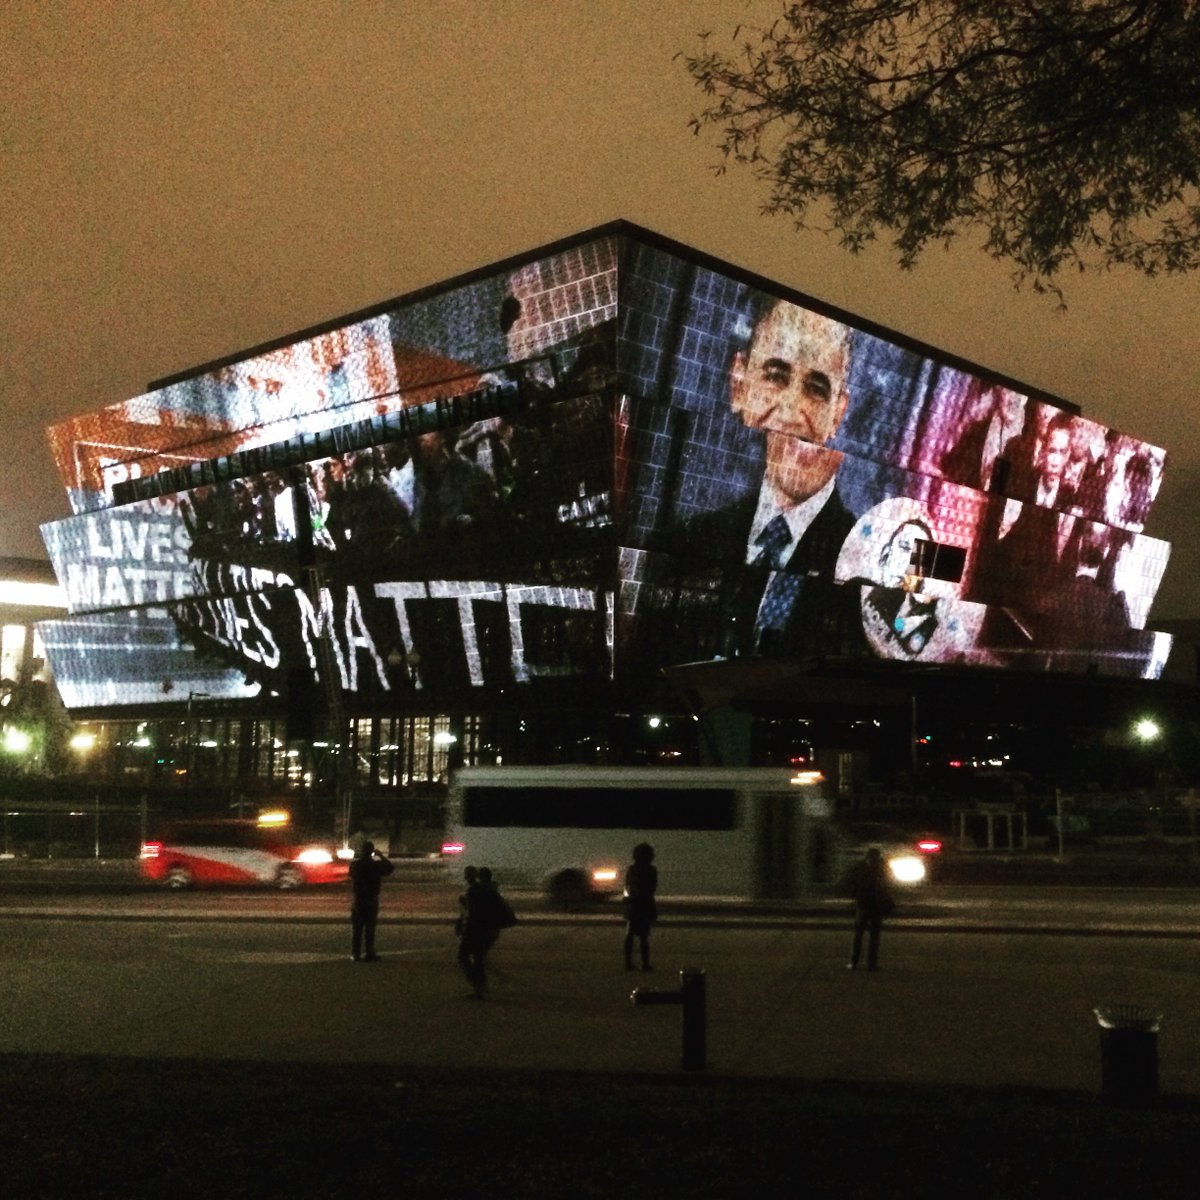 National Museum of African American History and Culture last night. Have you donated to it yet? @NMAAHC https://t.co/jRnNBXerQr